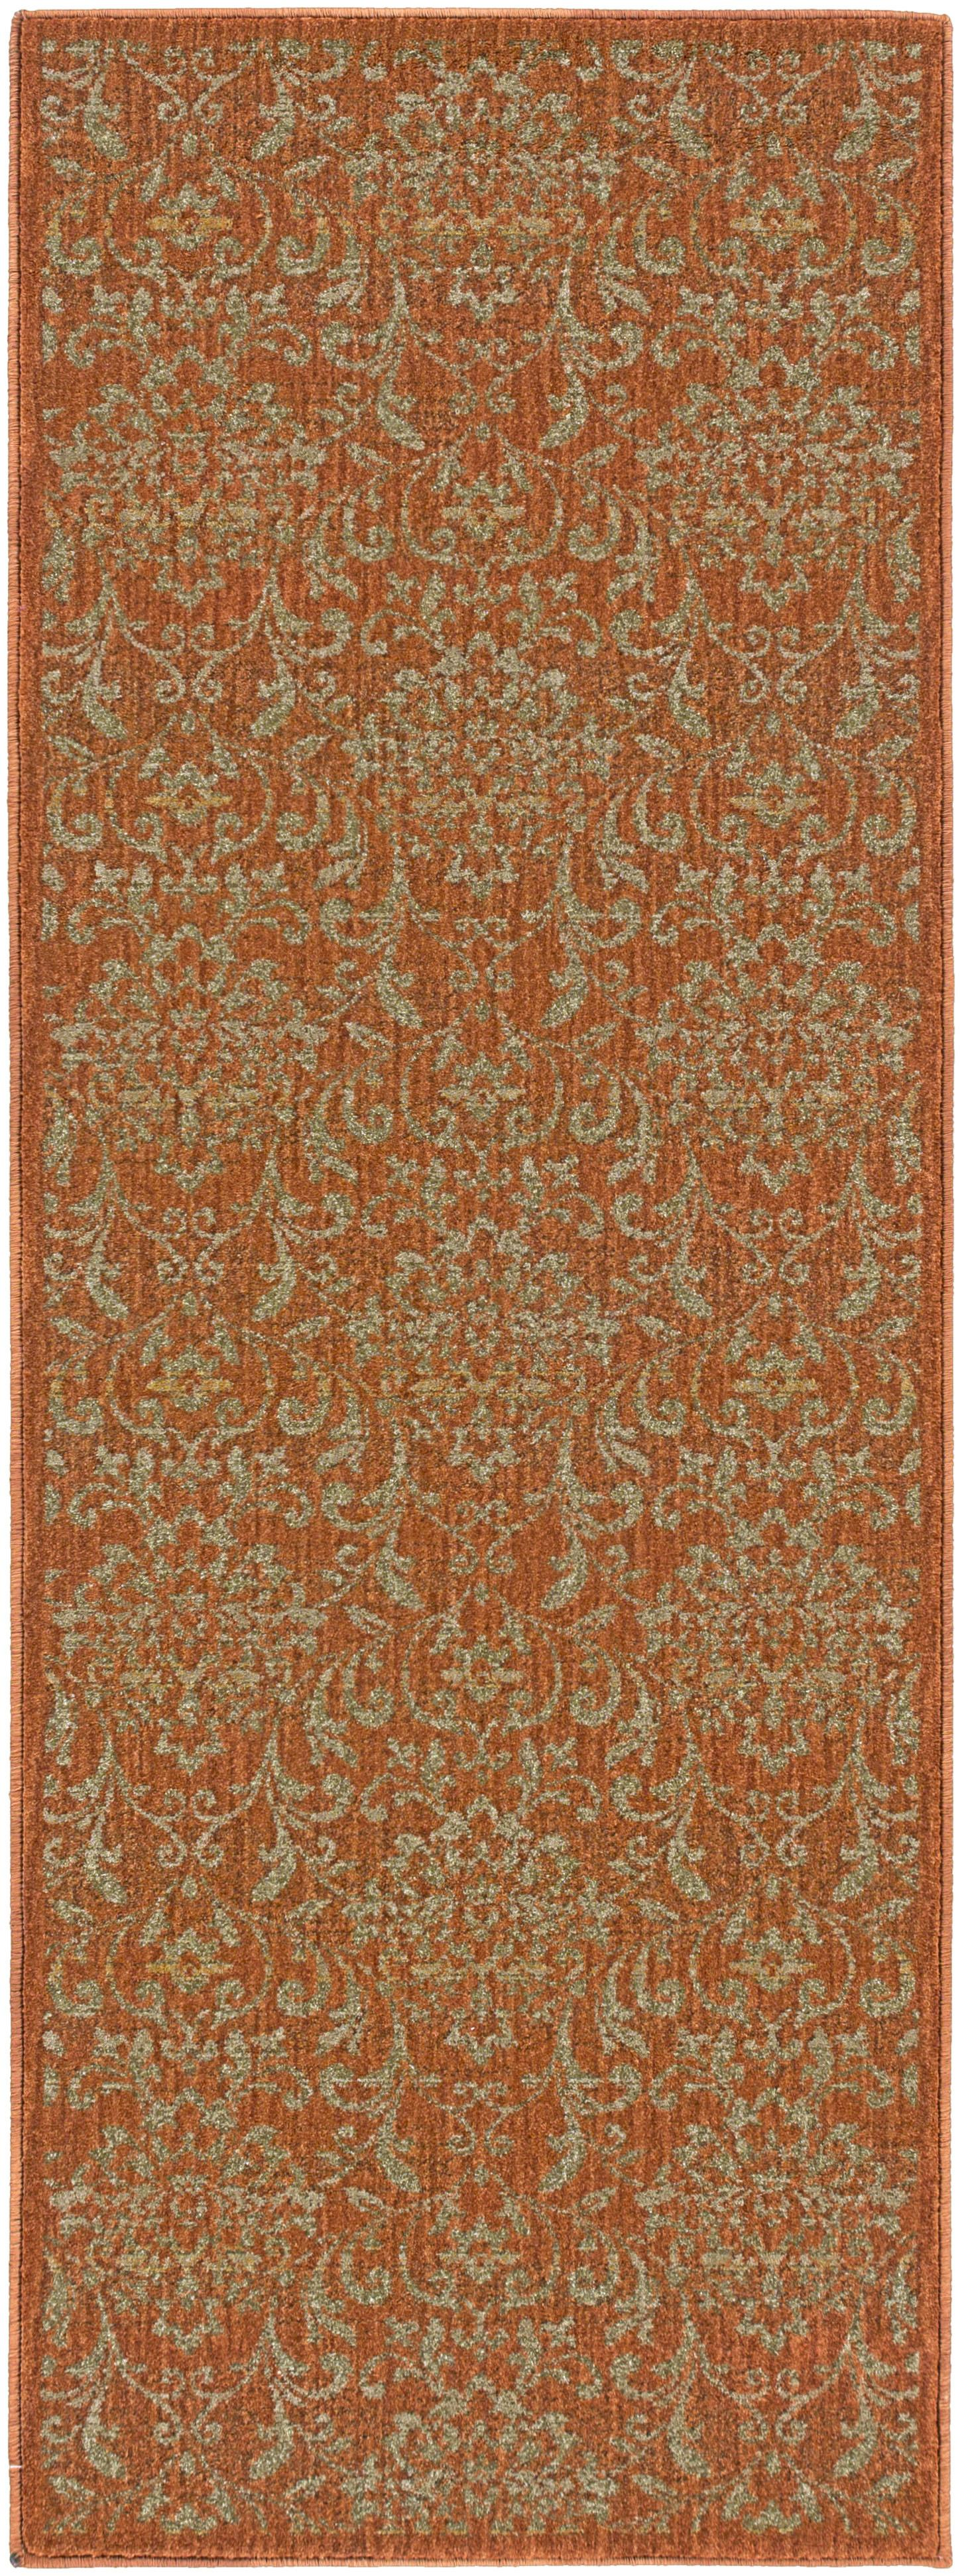 "Surya Rugs Arabesque 2'7"" x 7'3"" - Item Number: ABS3007-2773"